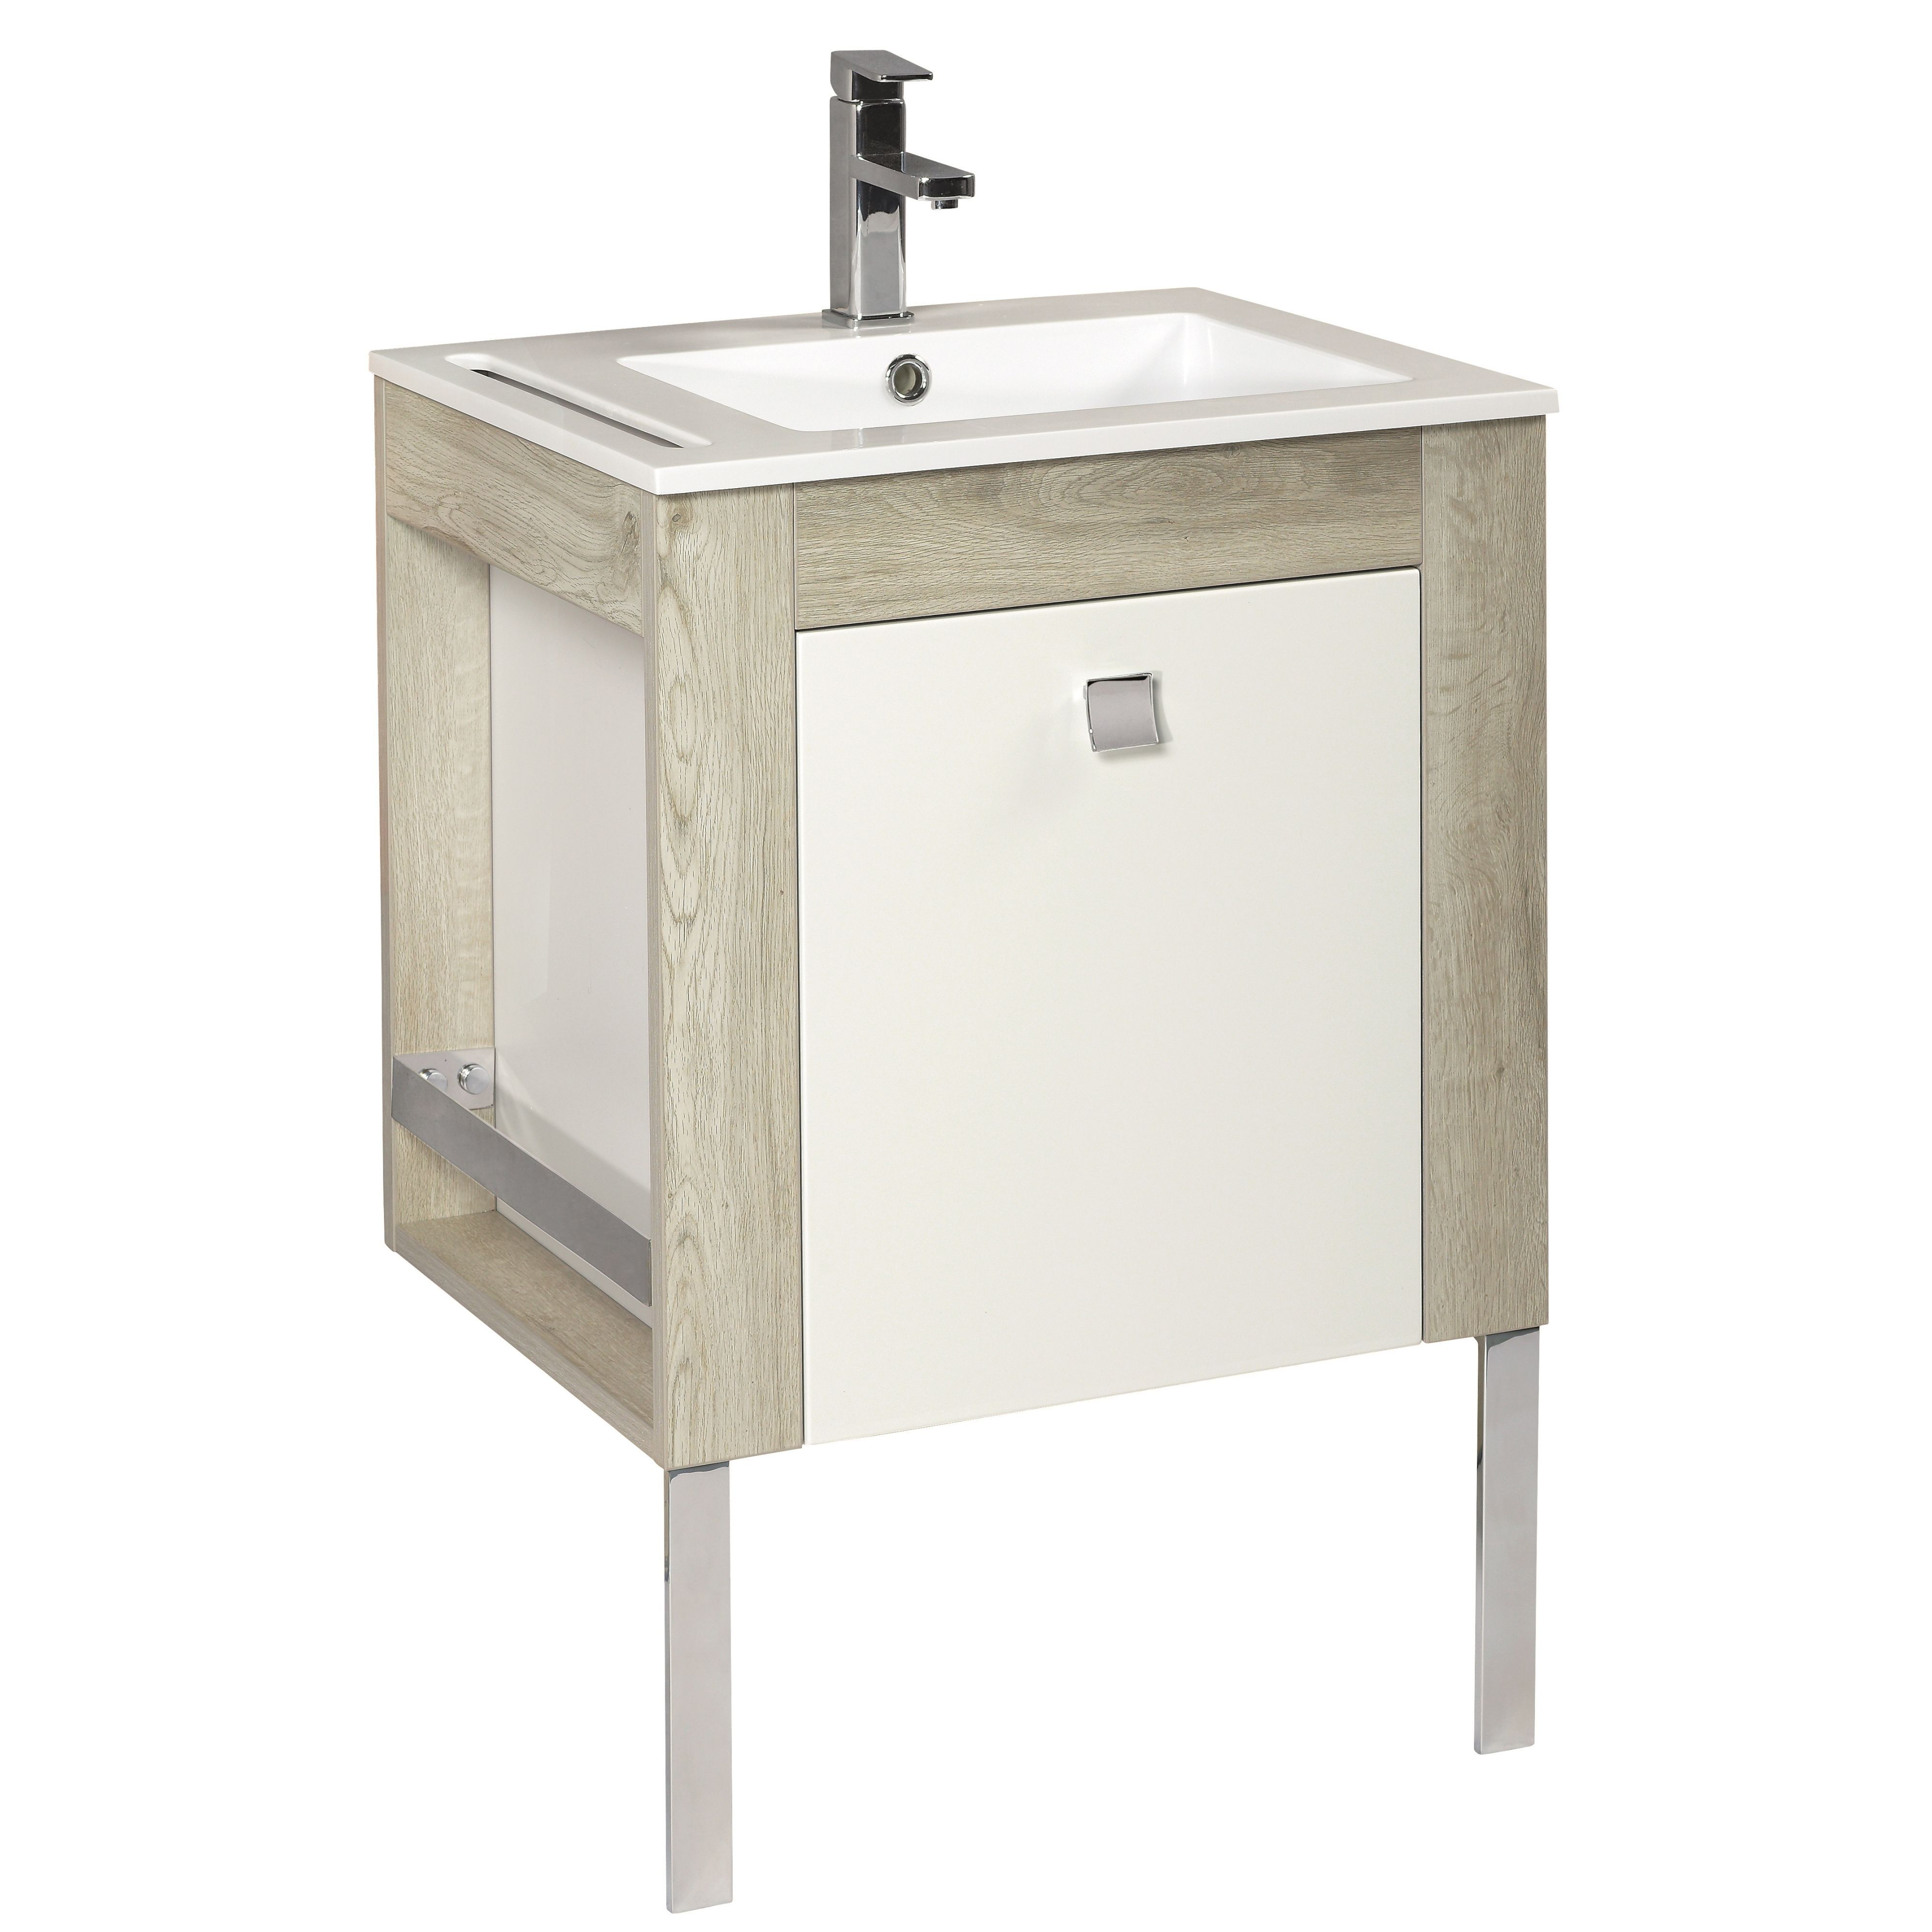 Cooke and lewis bathroom mirrors - Cooke Lewis Amazon Oak Effect With White Lacquer Vanity Unit Basin Set